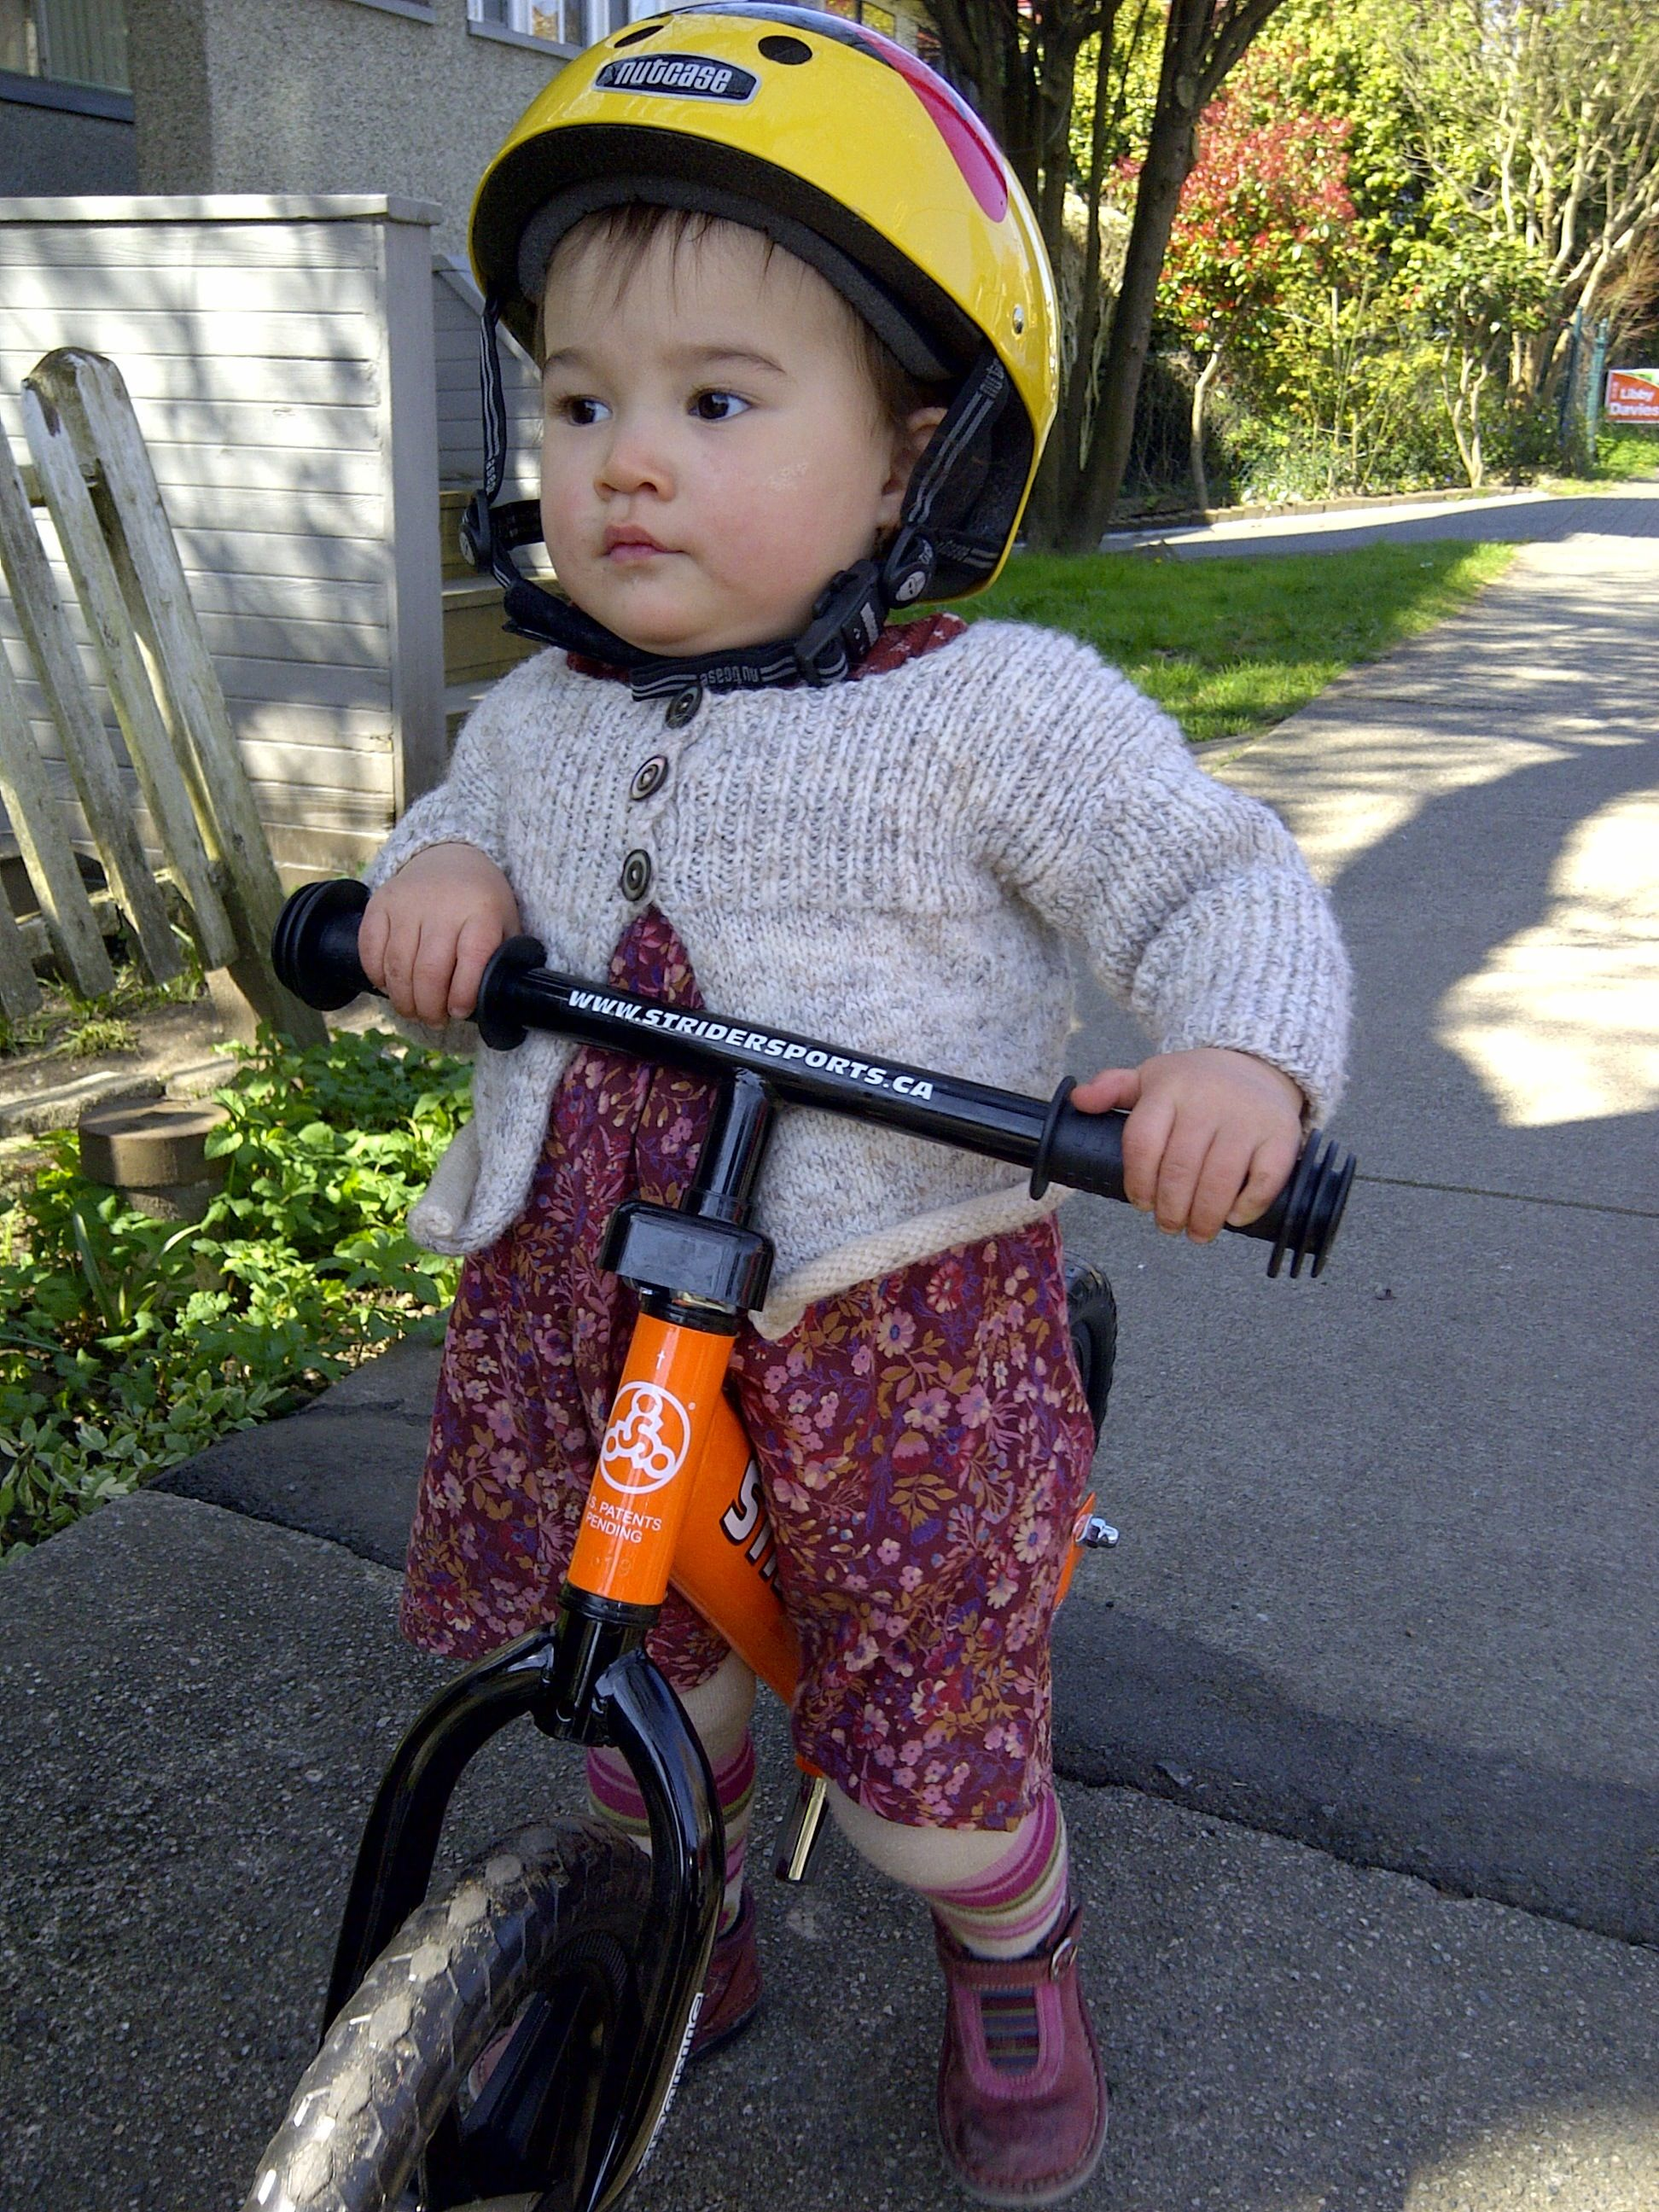 Looking to start you child on a bike?  Run bikes are the new tricycles and training wheels for little tykes.